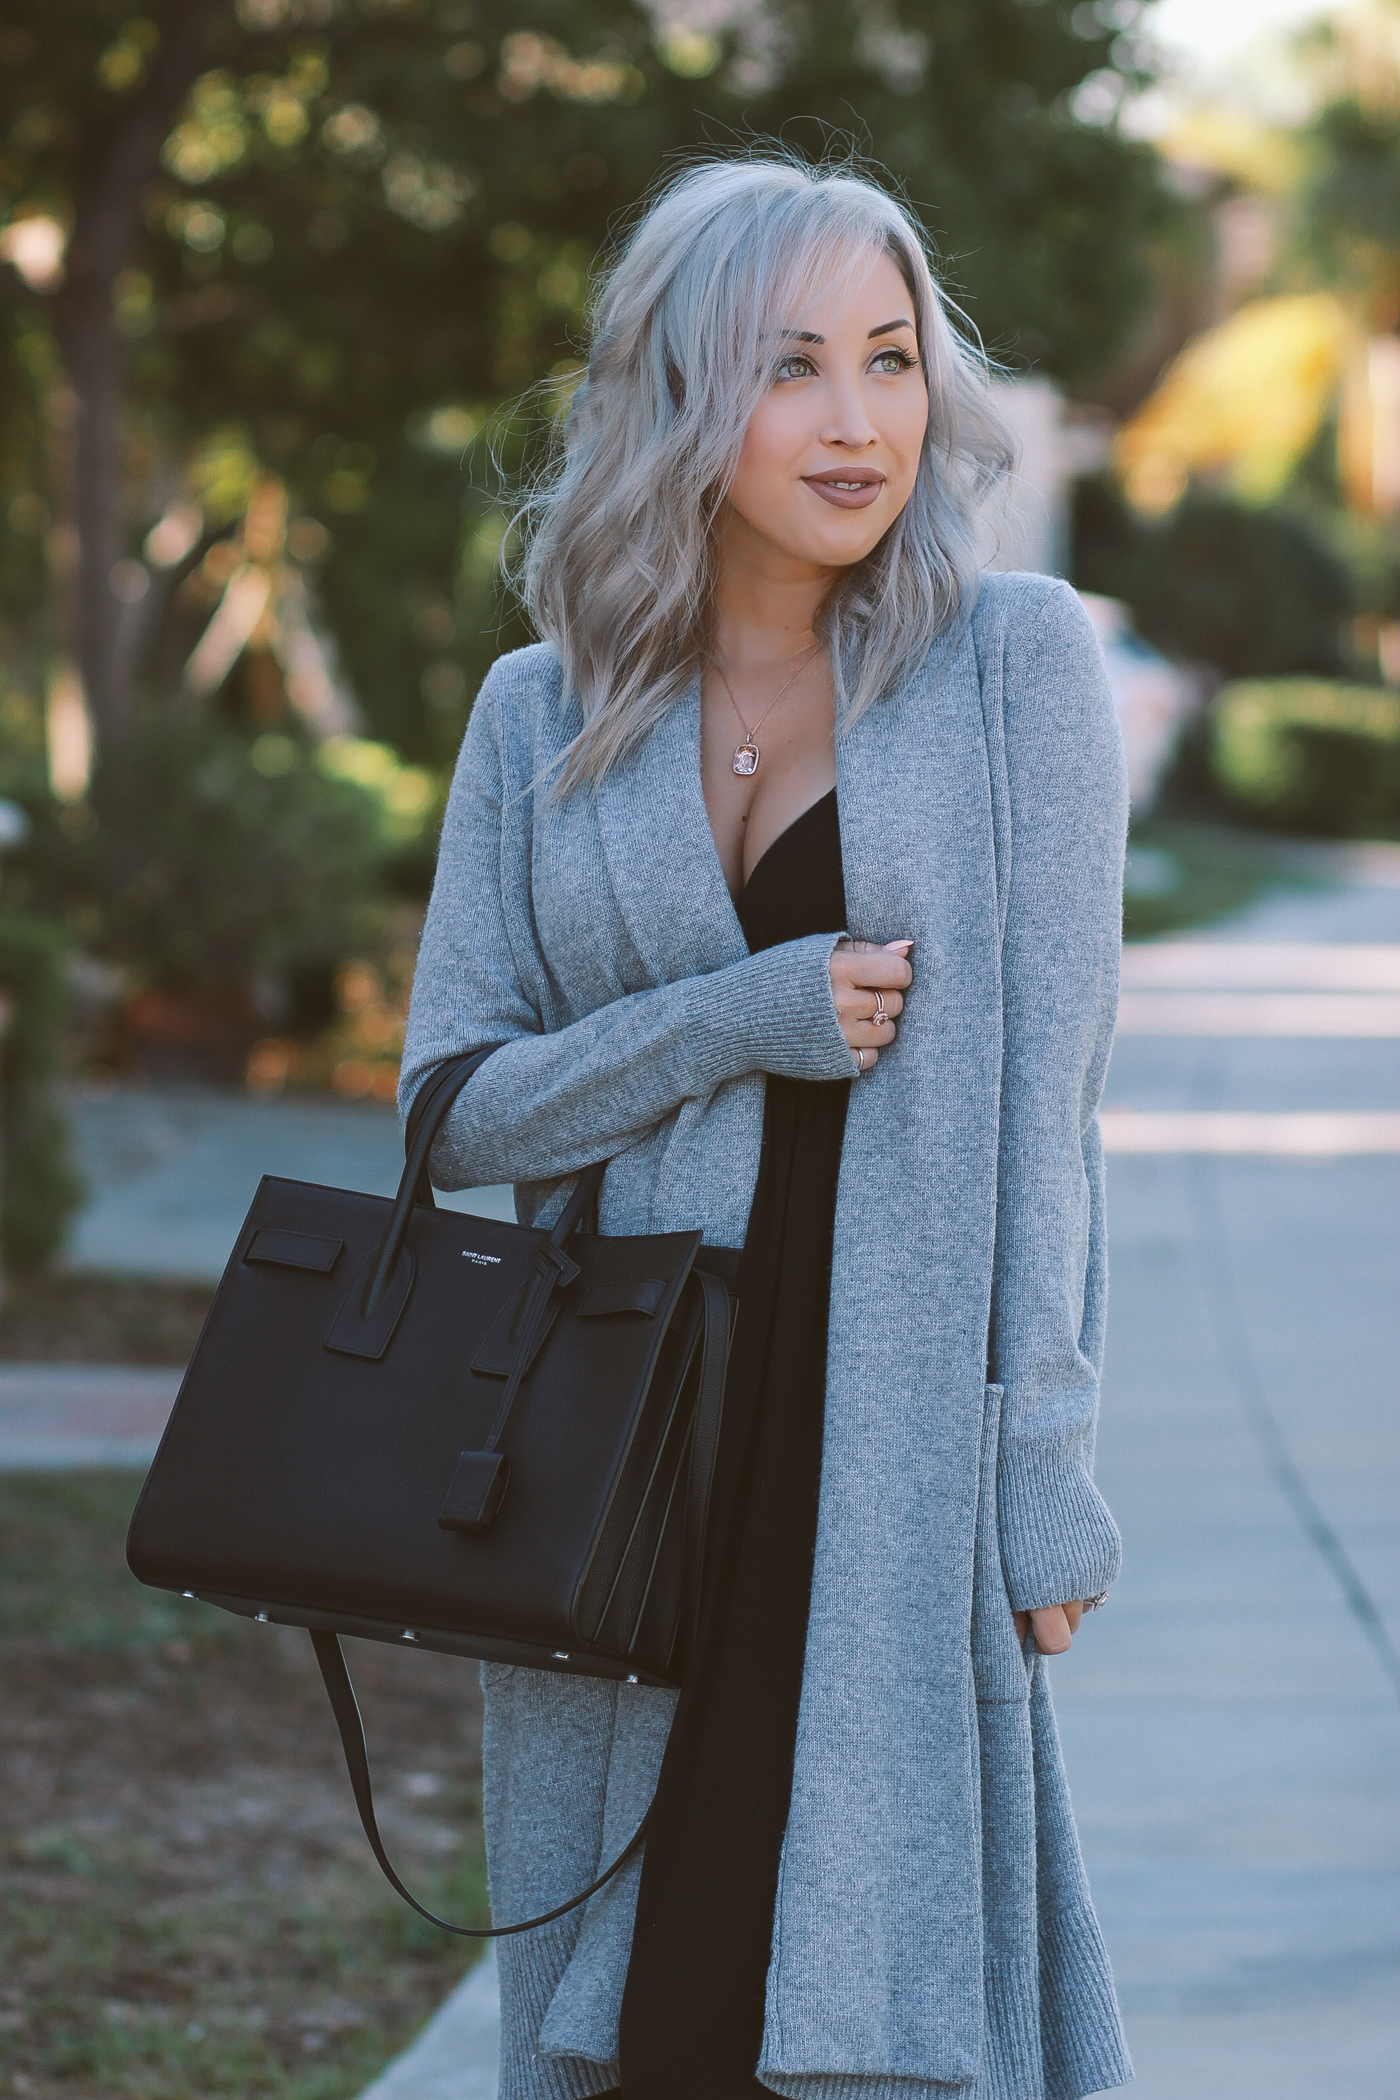 Black maxi dress with sweater